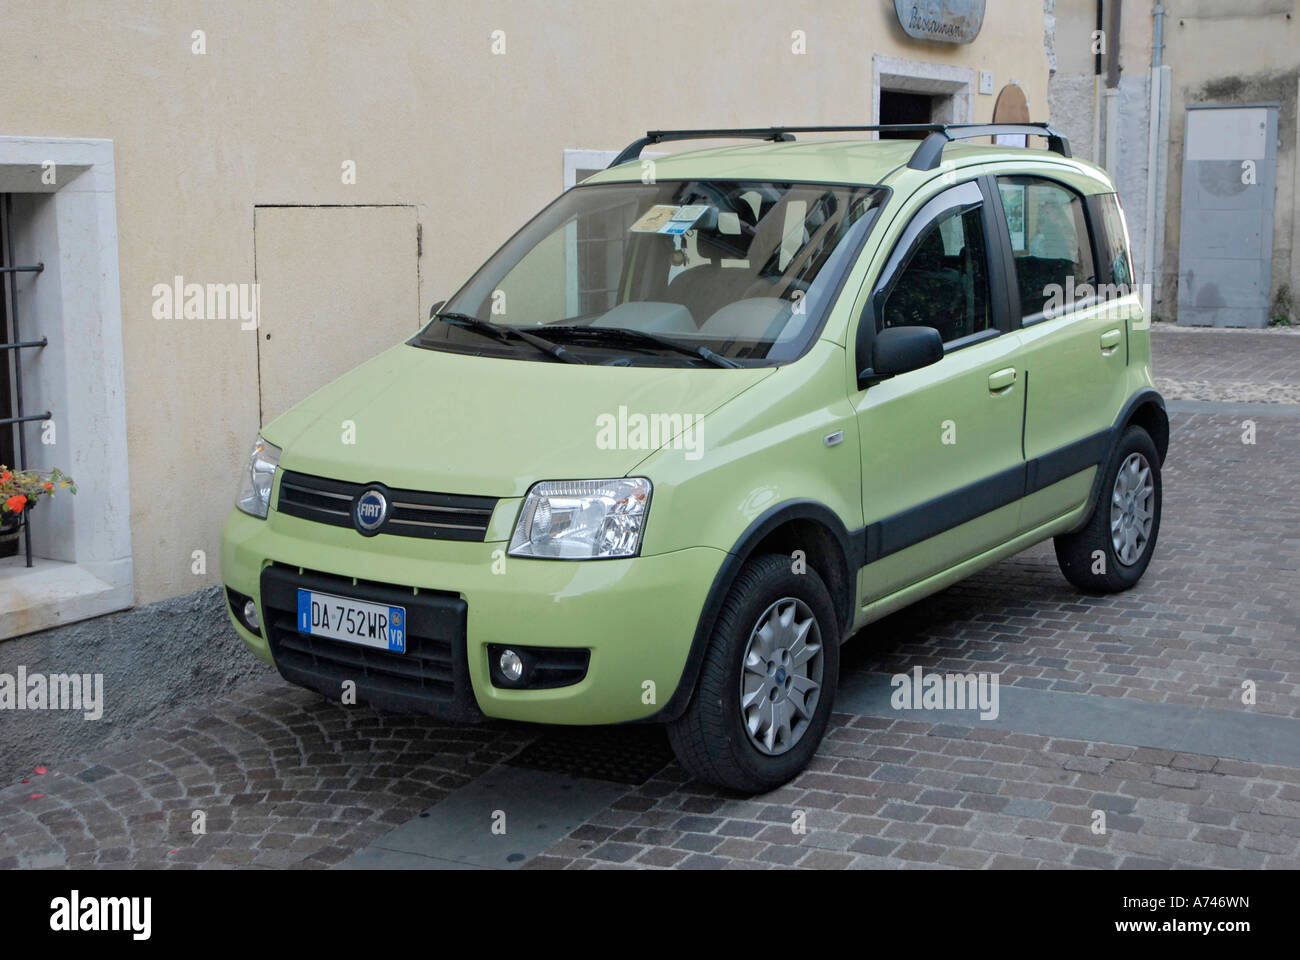 a-green-fiat-panda-car-parked-at-the-side-of-the-street-in-italy